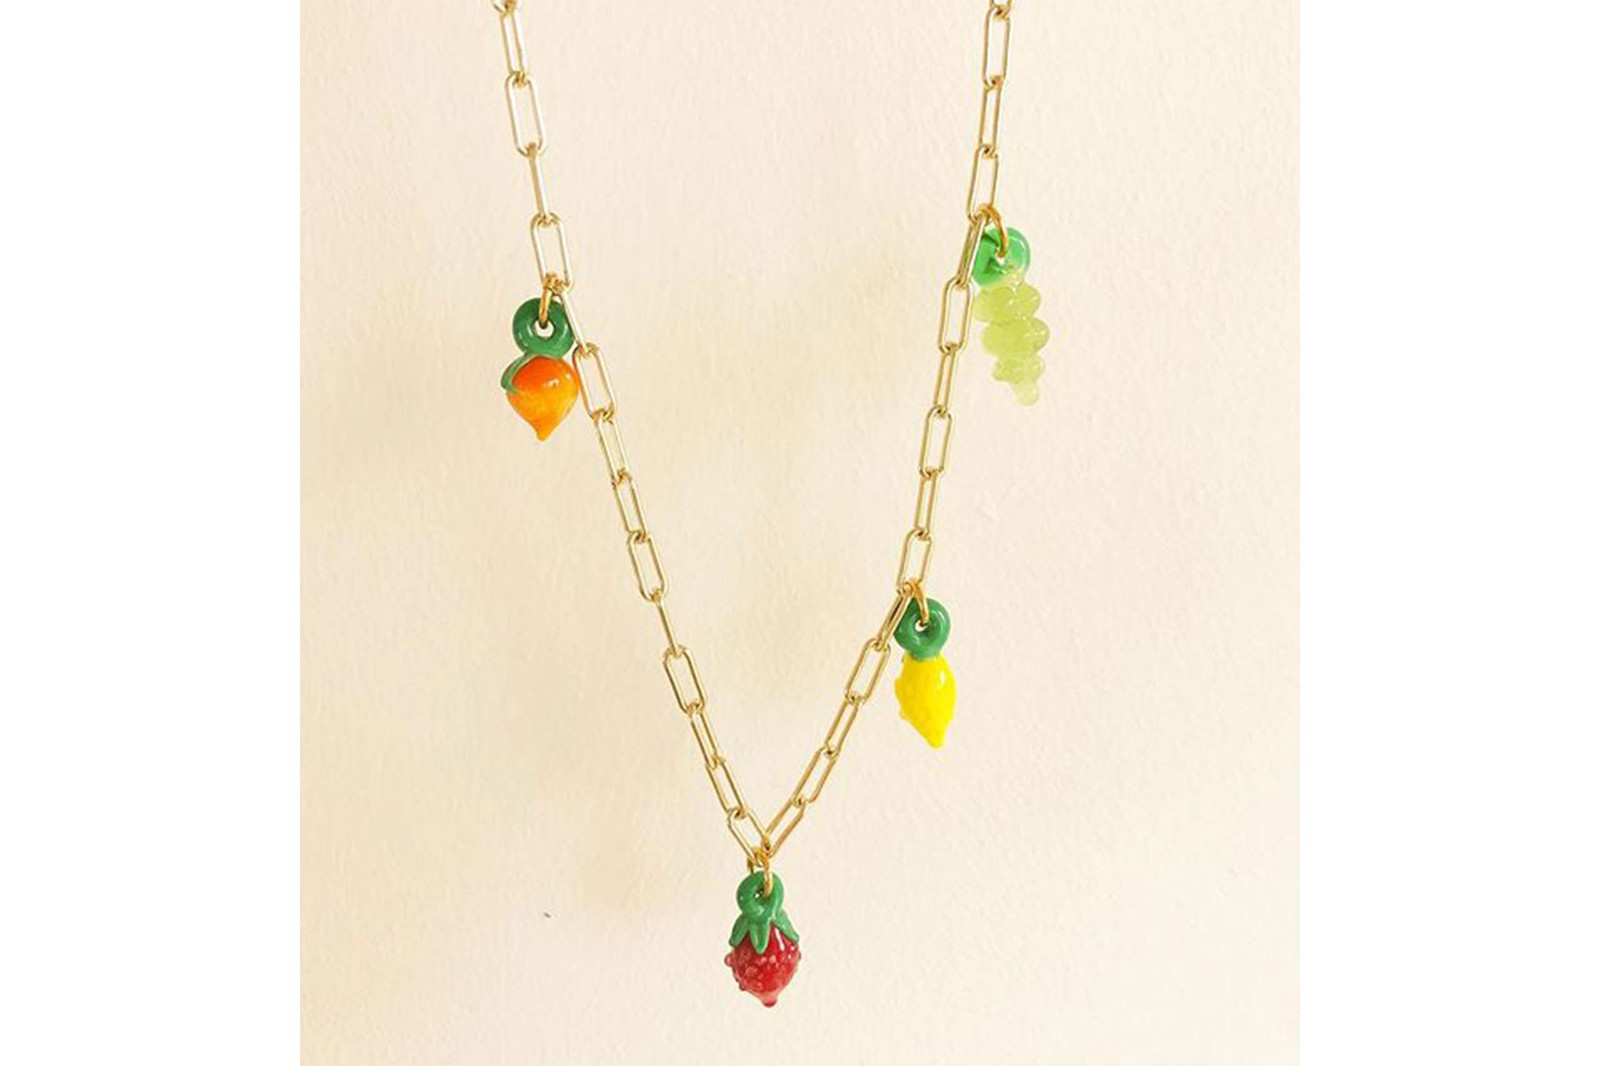 jean riley jewelry brand australian summer fruits sustainable accessories rings necklaces earrings